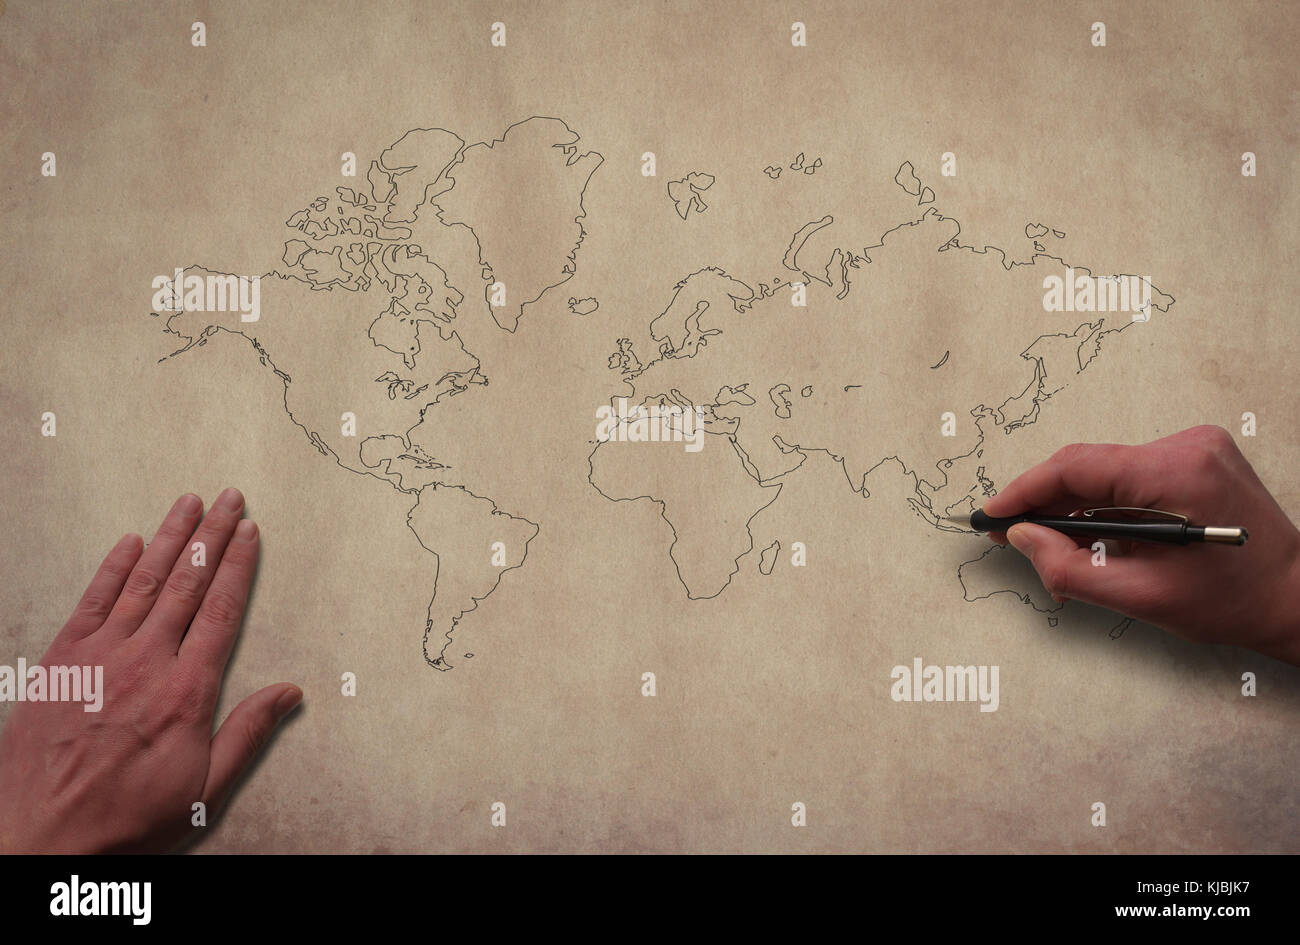 Hands drawing world map outline world map on the old paper texture hands drawing world map outline world map on the old paper texture background hands drawing contour of global map with pencil gumiabroncs Choice Image